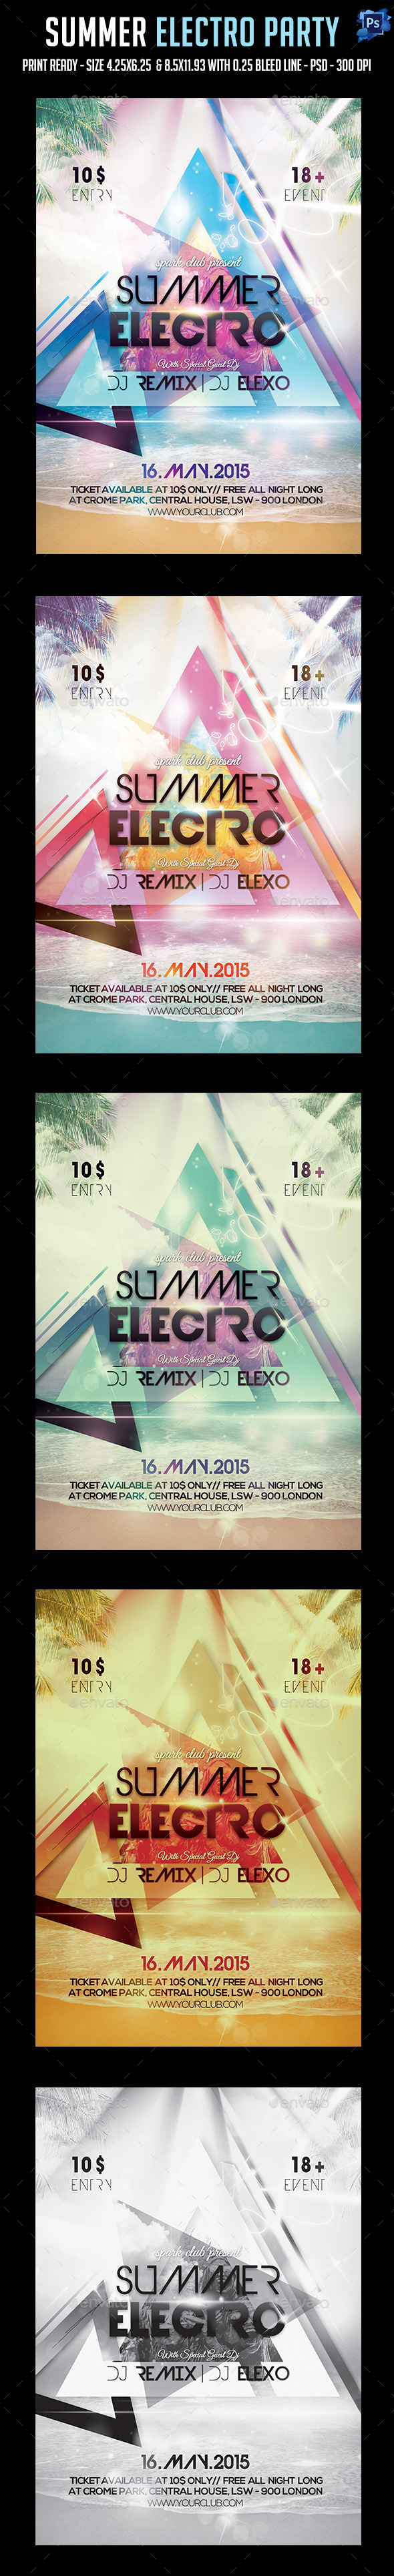 Summer Electro Party Flyer - Clubs & Parties Events